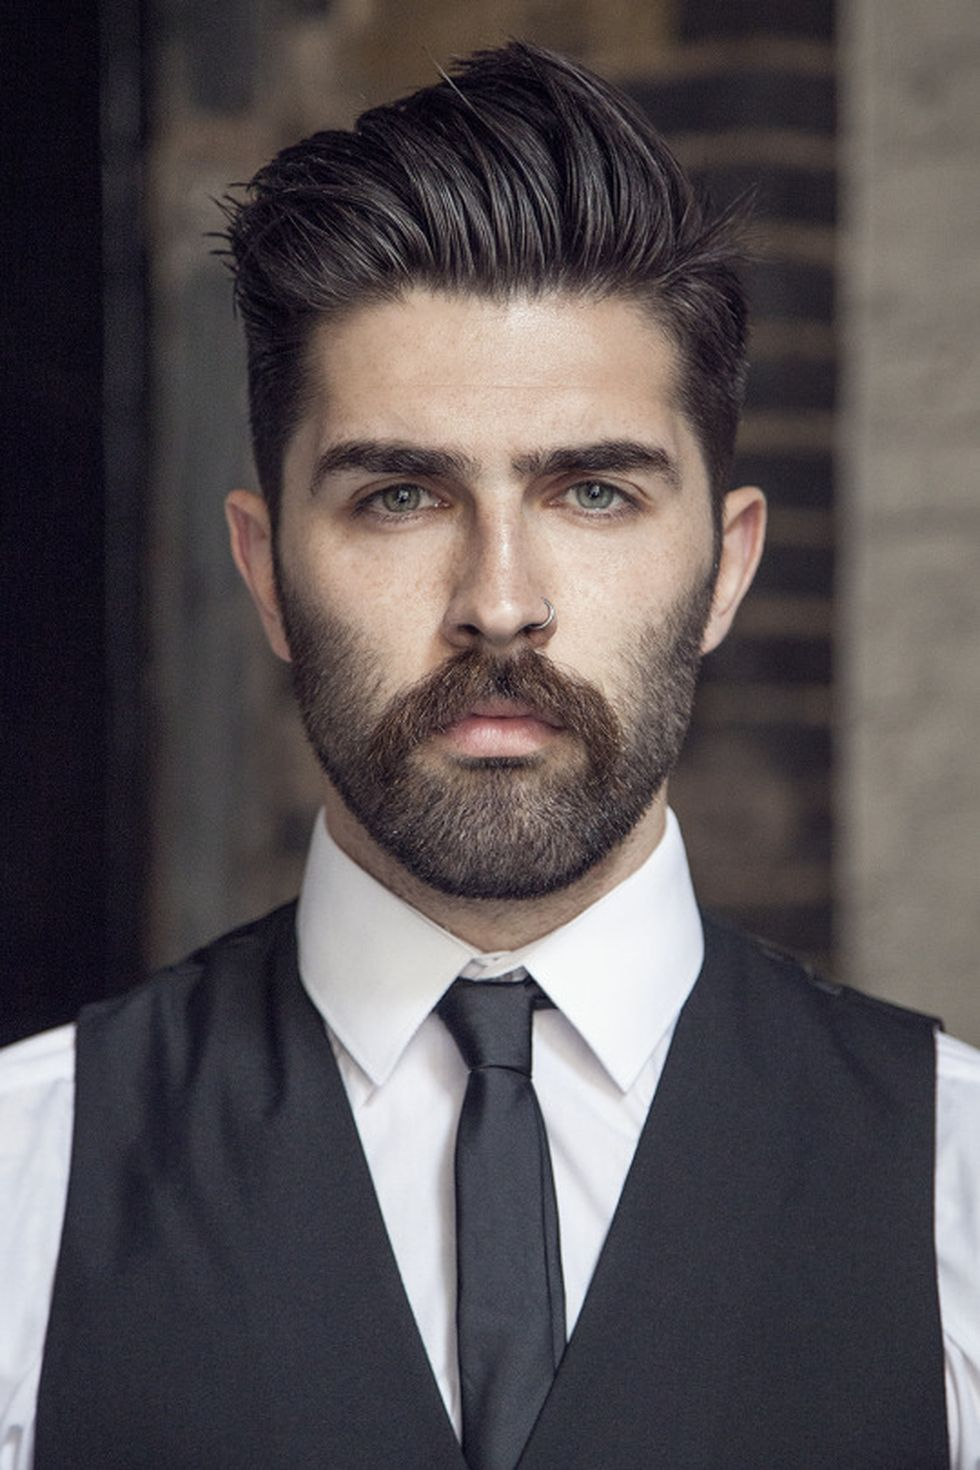 Men classy modern pompadour hairstyle 6